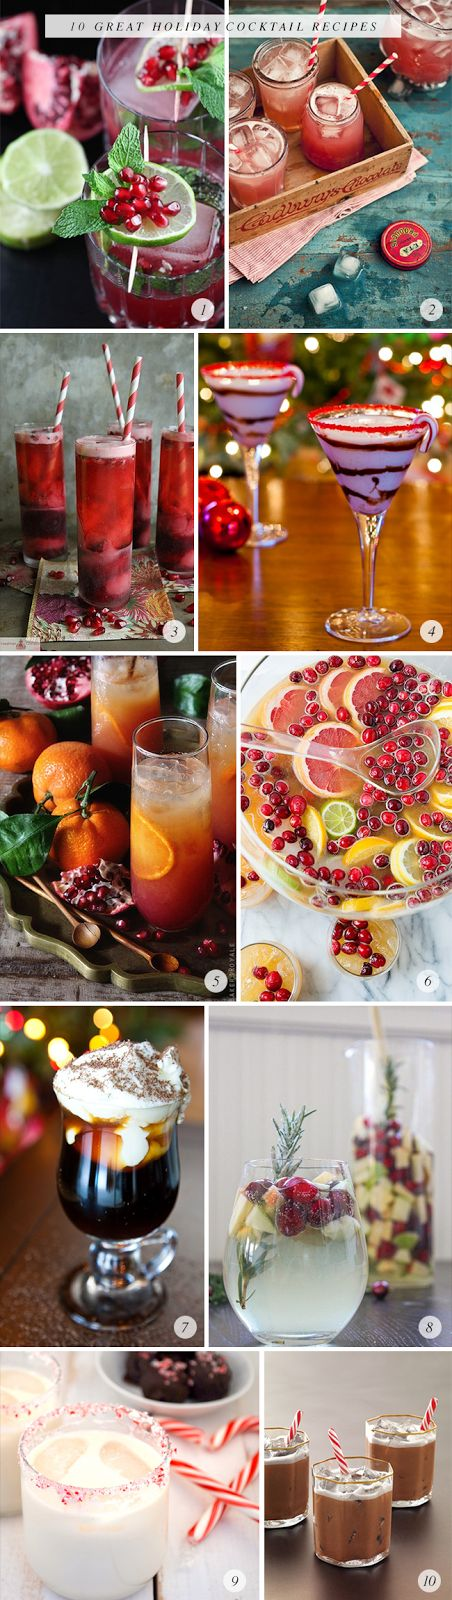 10 Great Holiday Cocktails